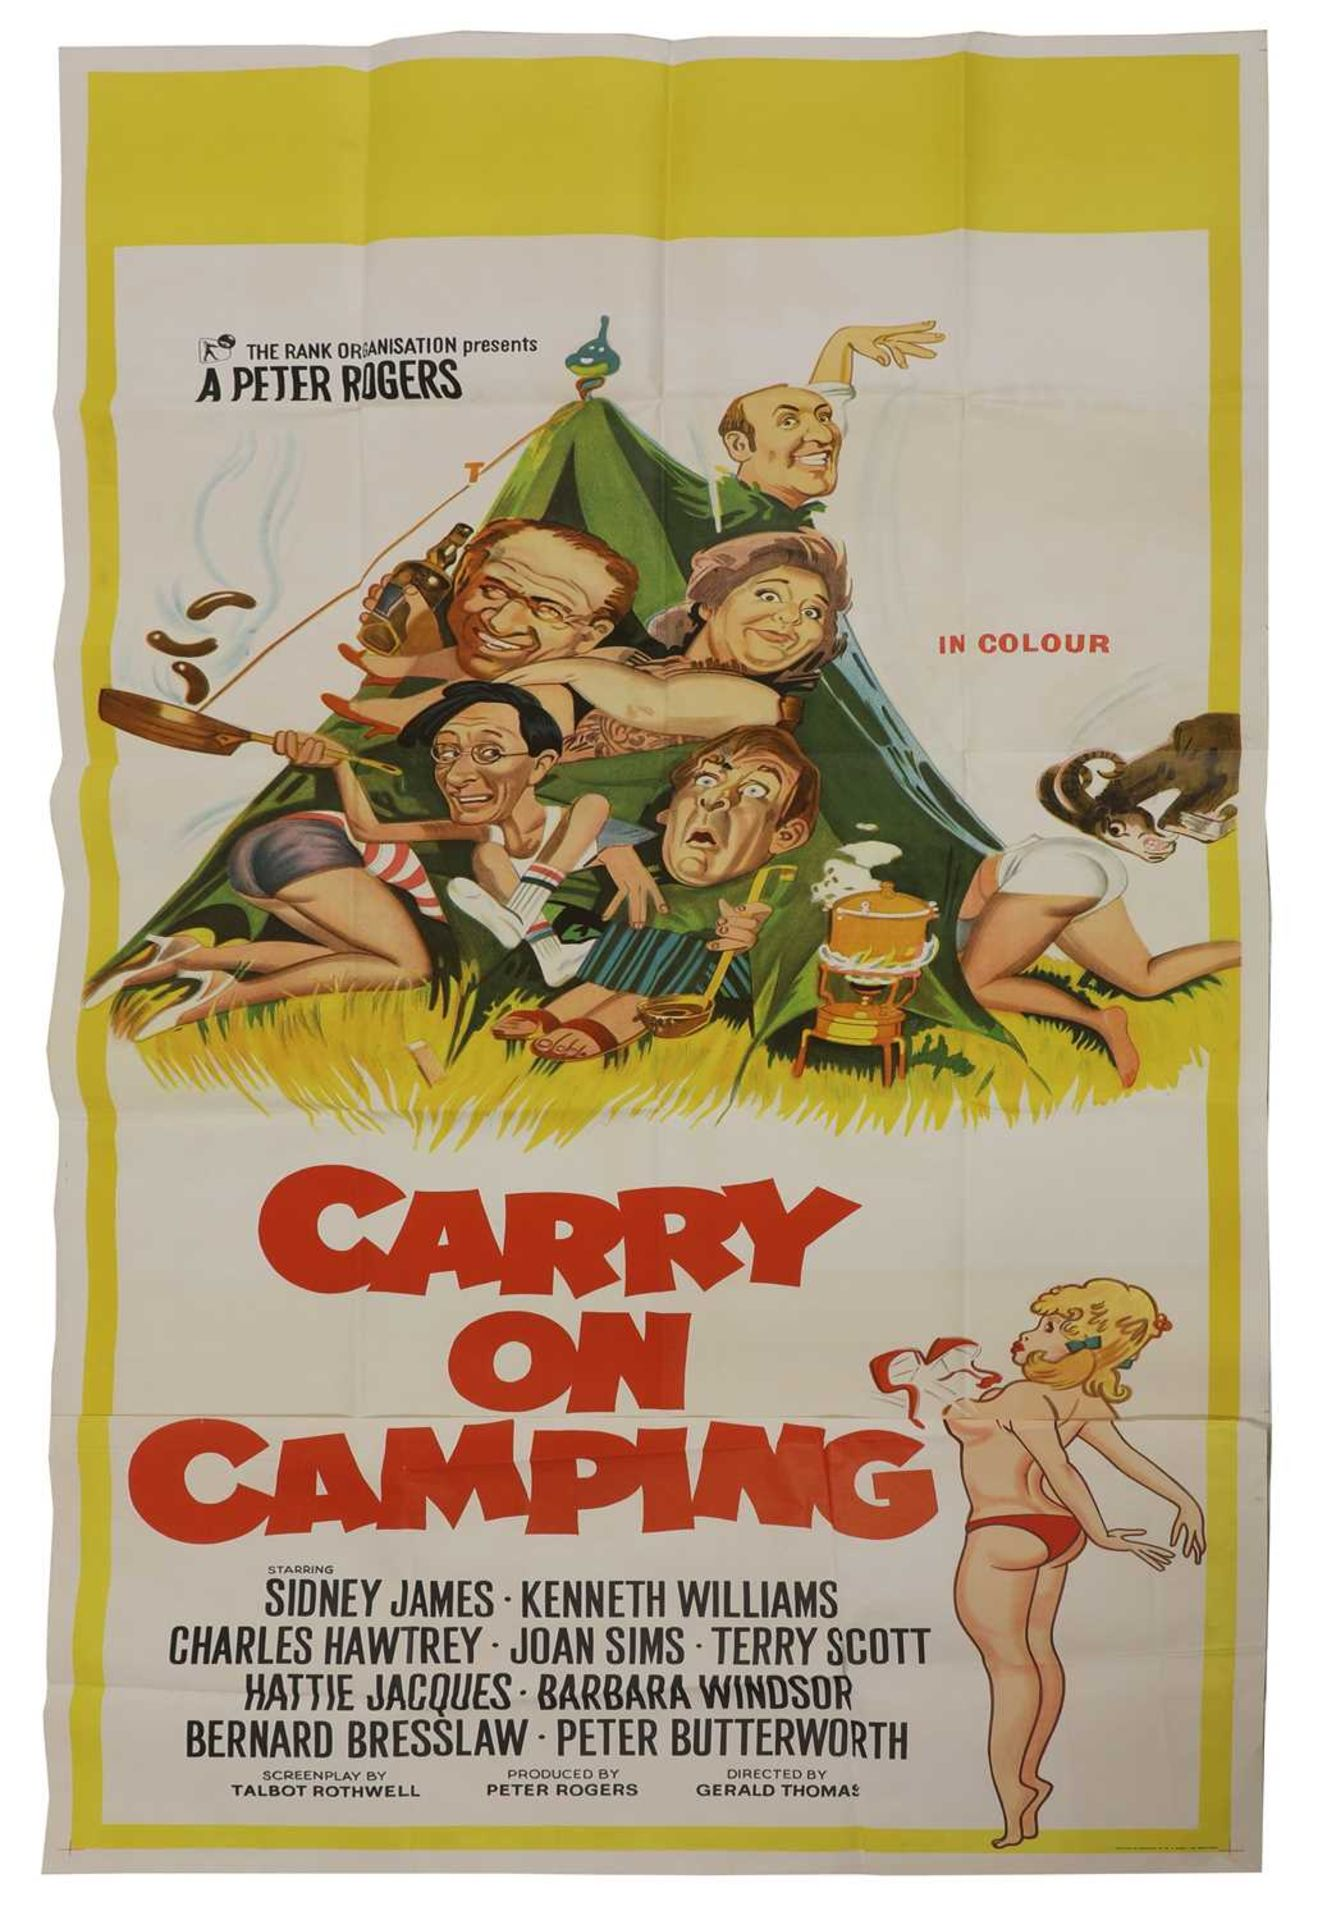 A film poster for 'Carry On Camping',